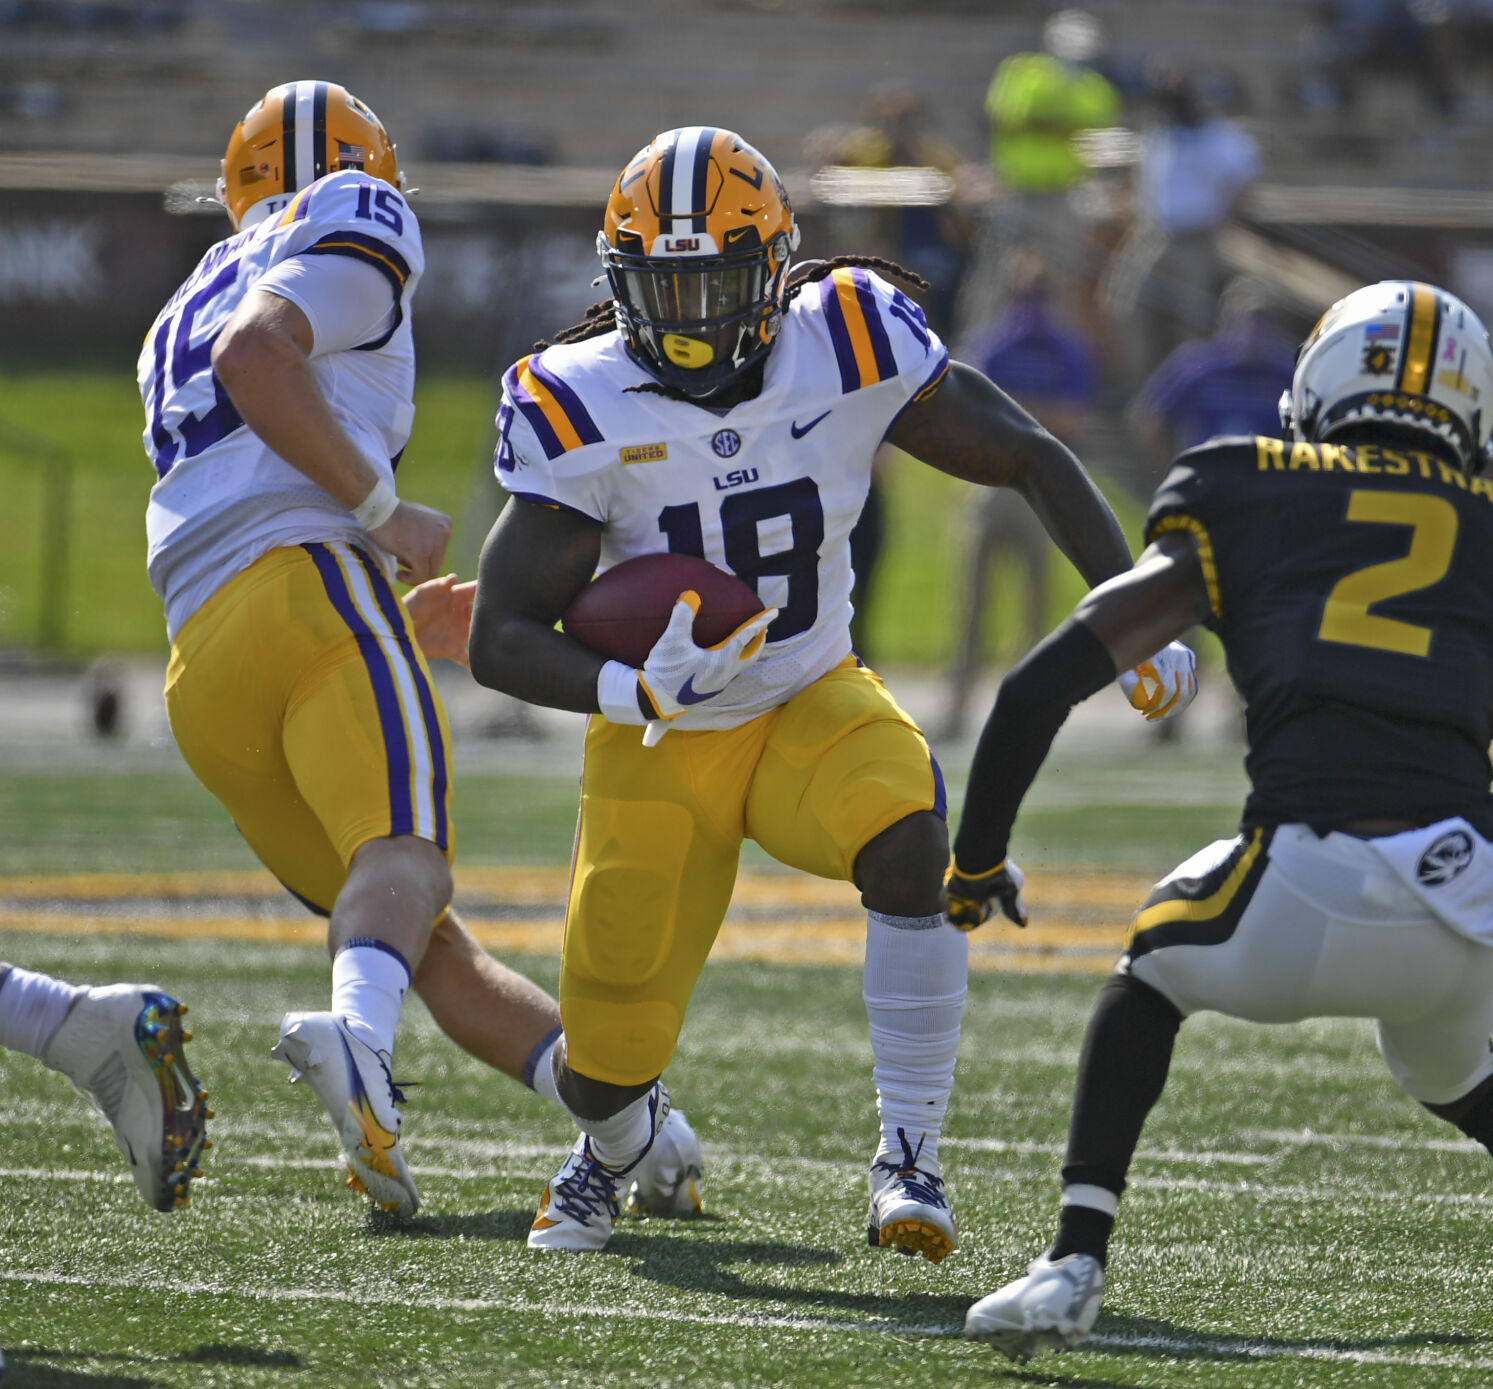 Former LSU running back Chris Curry announces transfer to Utah ...